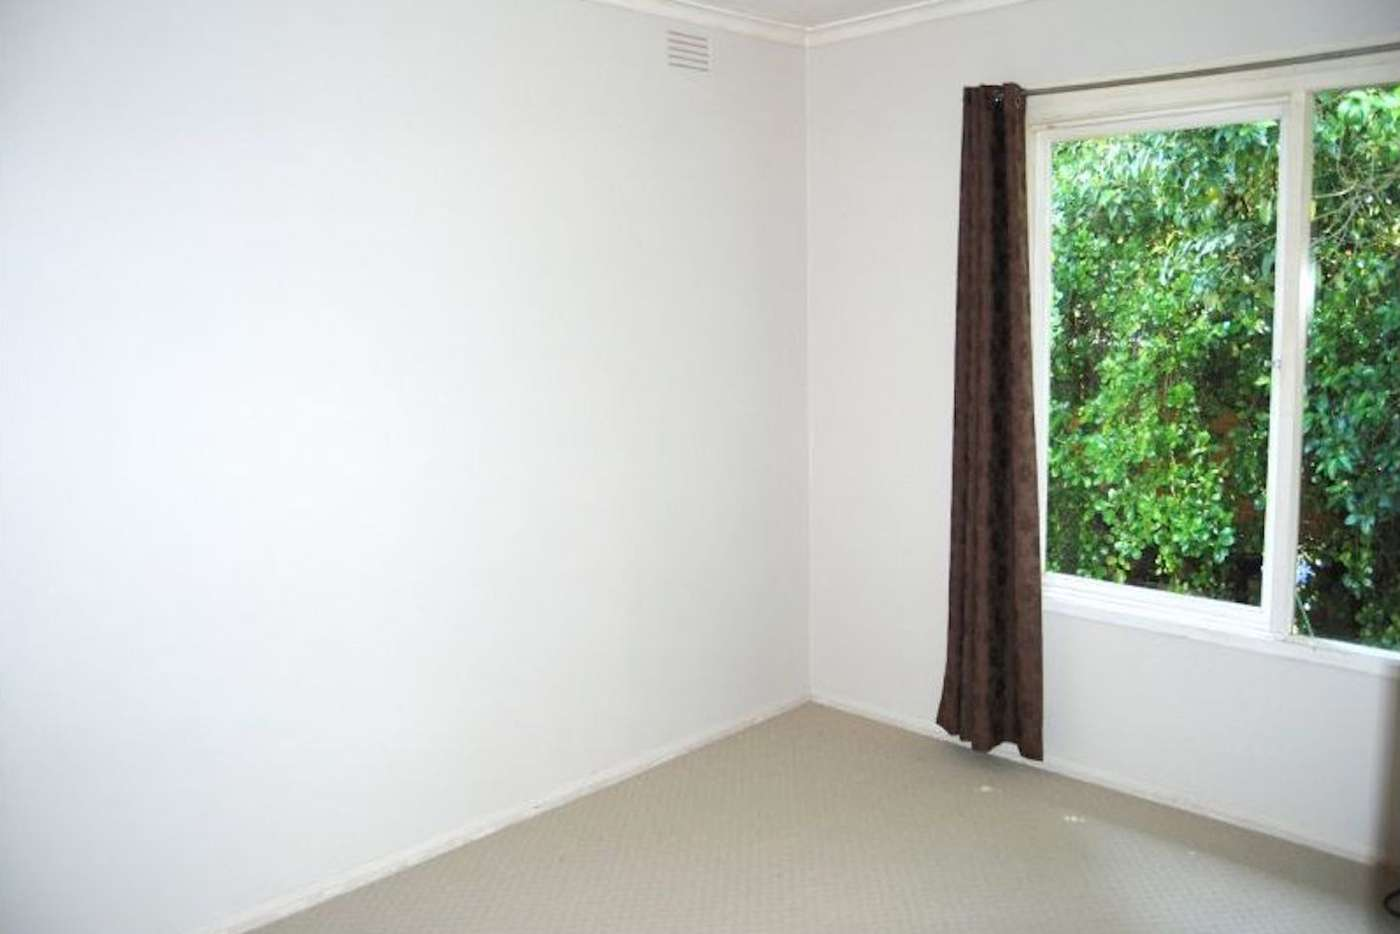 Sixth view of Homely house listing, 14 Coolabah Street, Doncaster VIC 3108